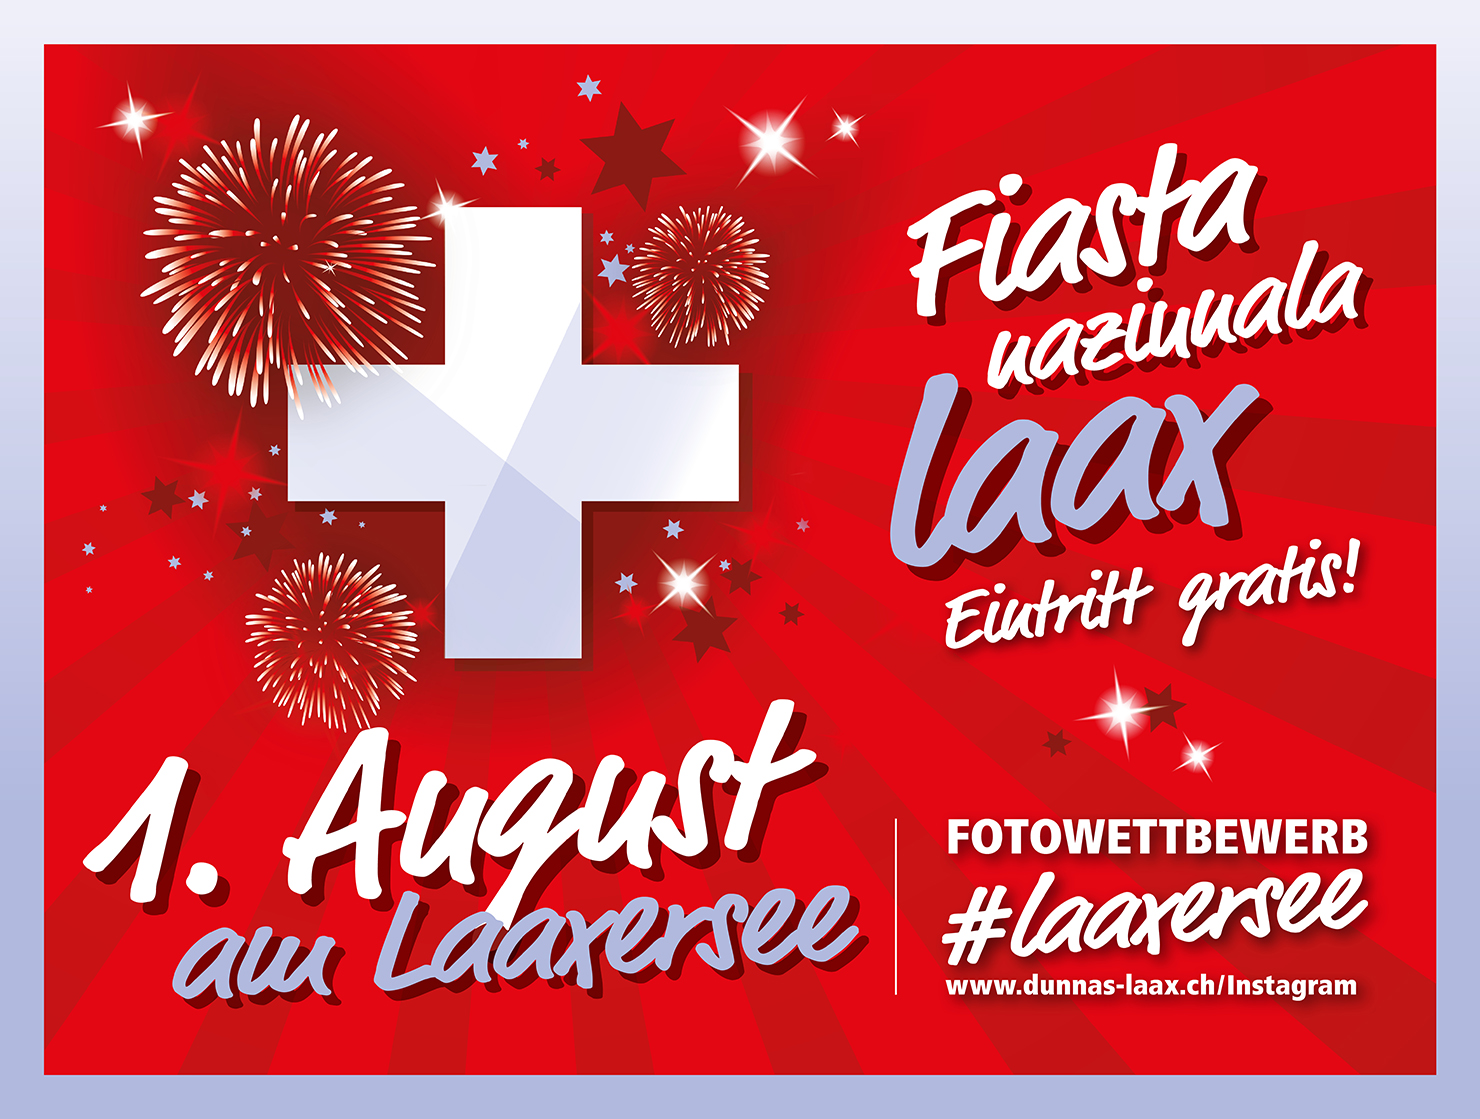 1st August celebration at Lake Laax